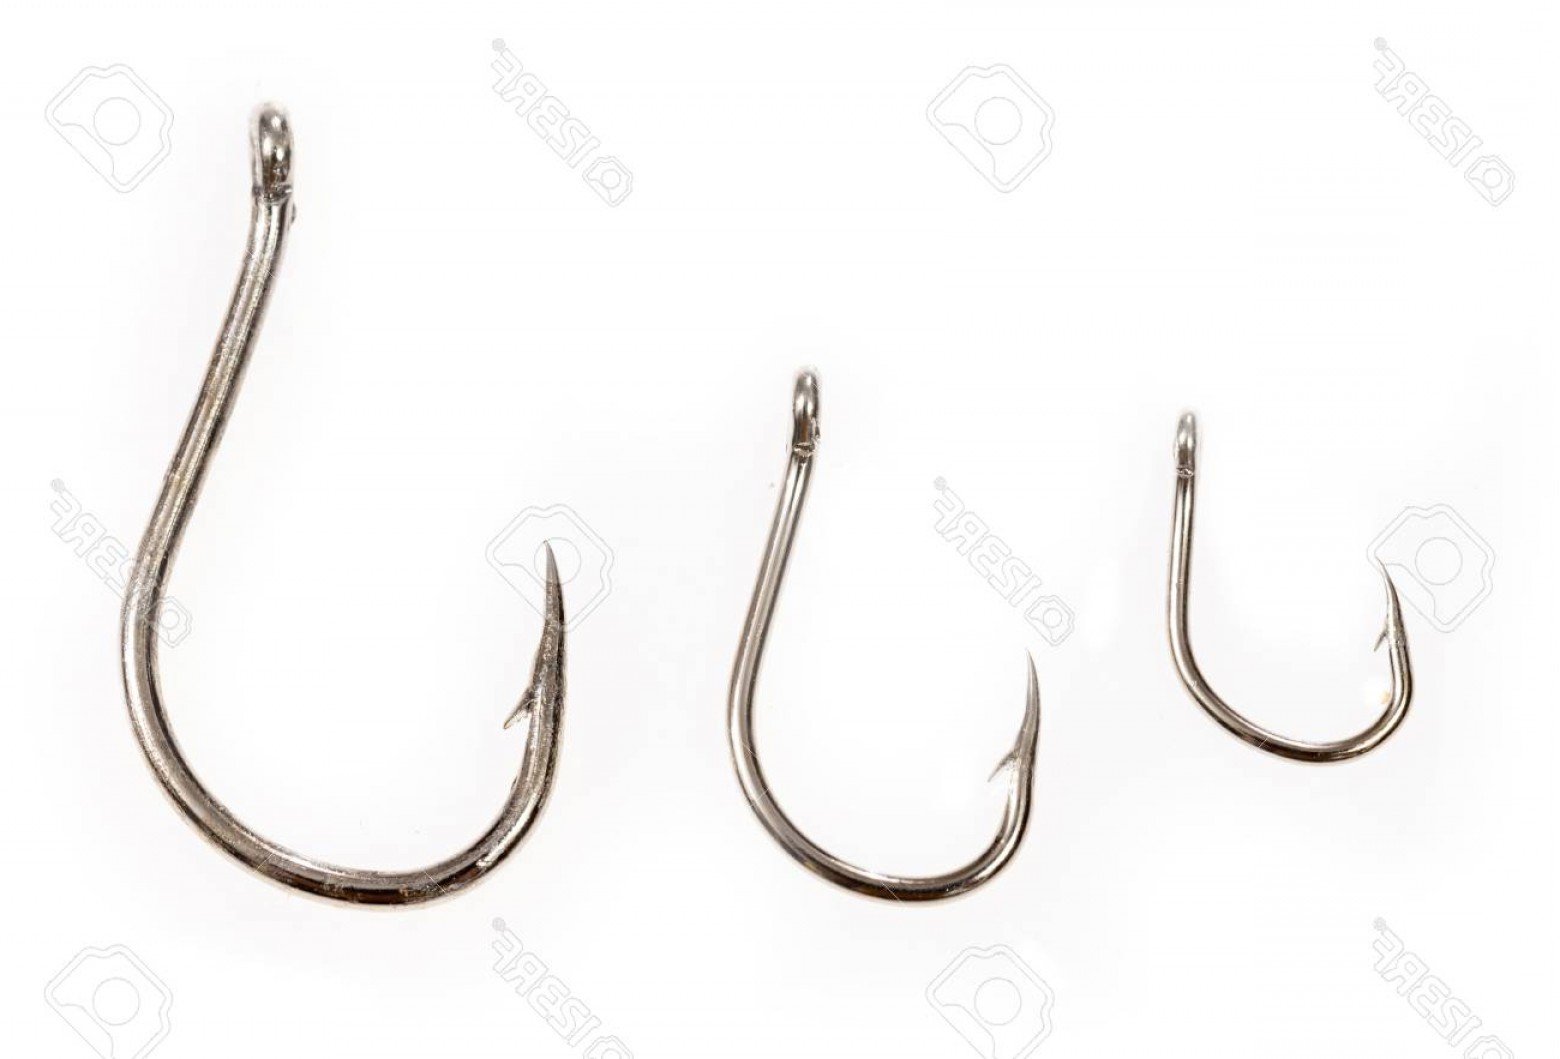 Heard Fishing Hook Vector: Photostock Illustration Fishing Hooks Set Sharp Treble And Worm Type Gear For Tourism And Hobby Device For Catching Fish Vec